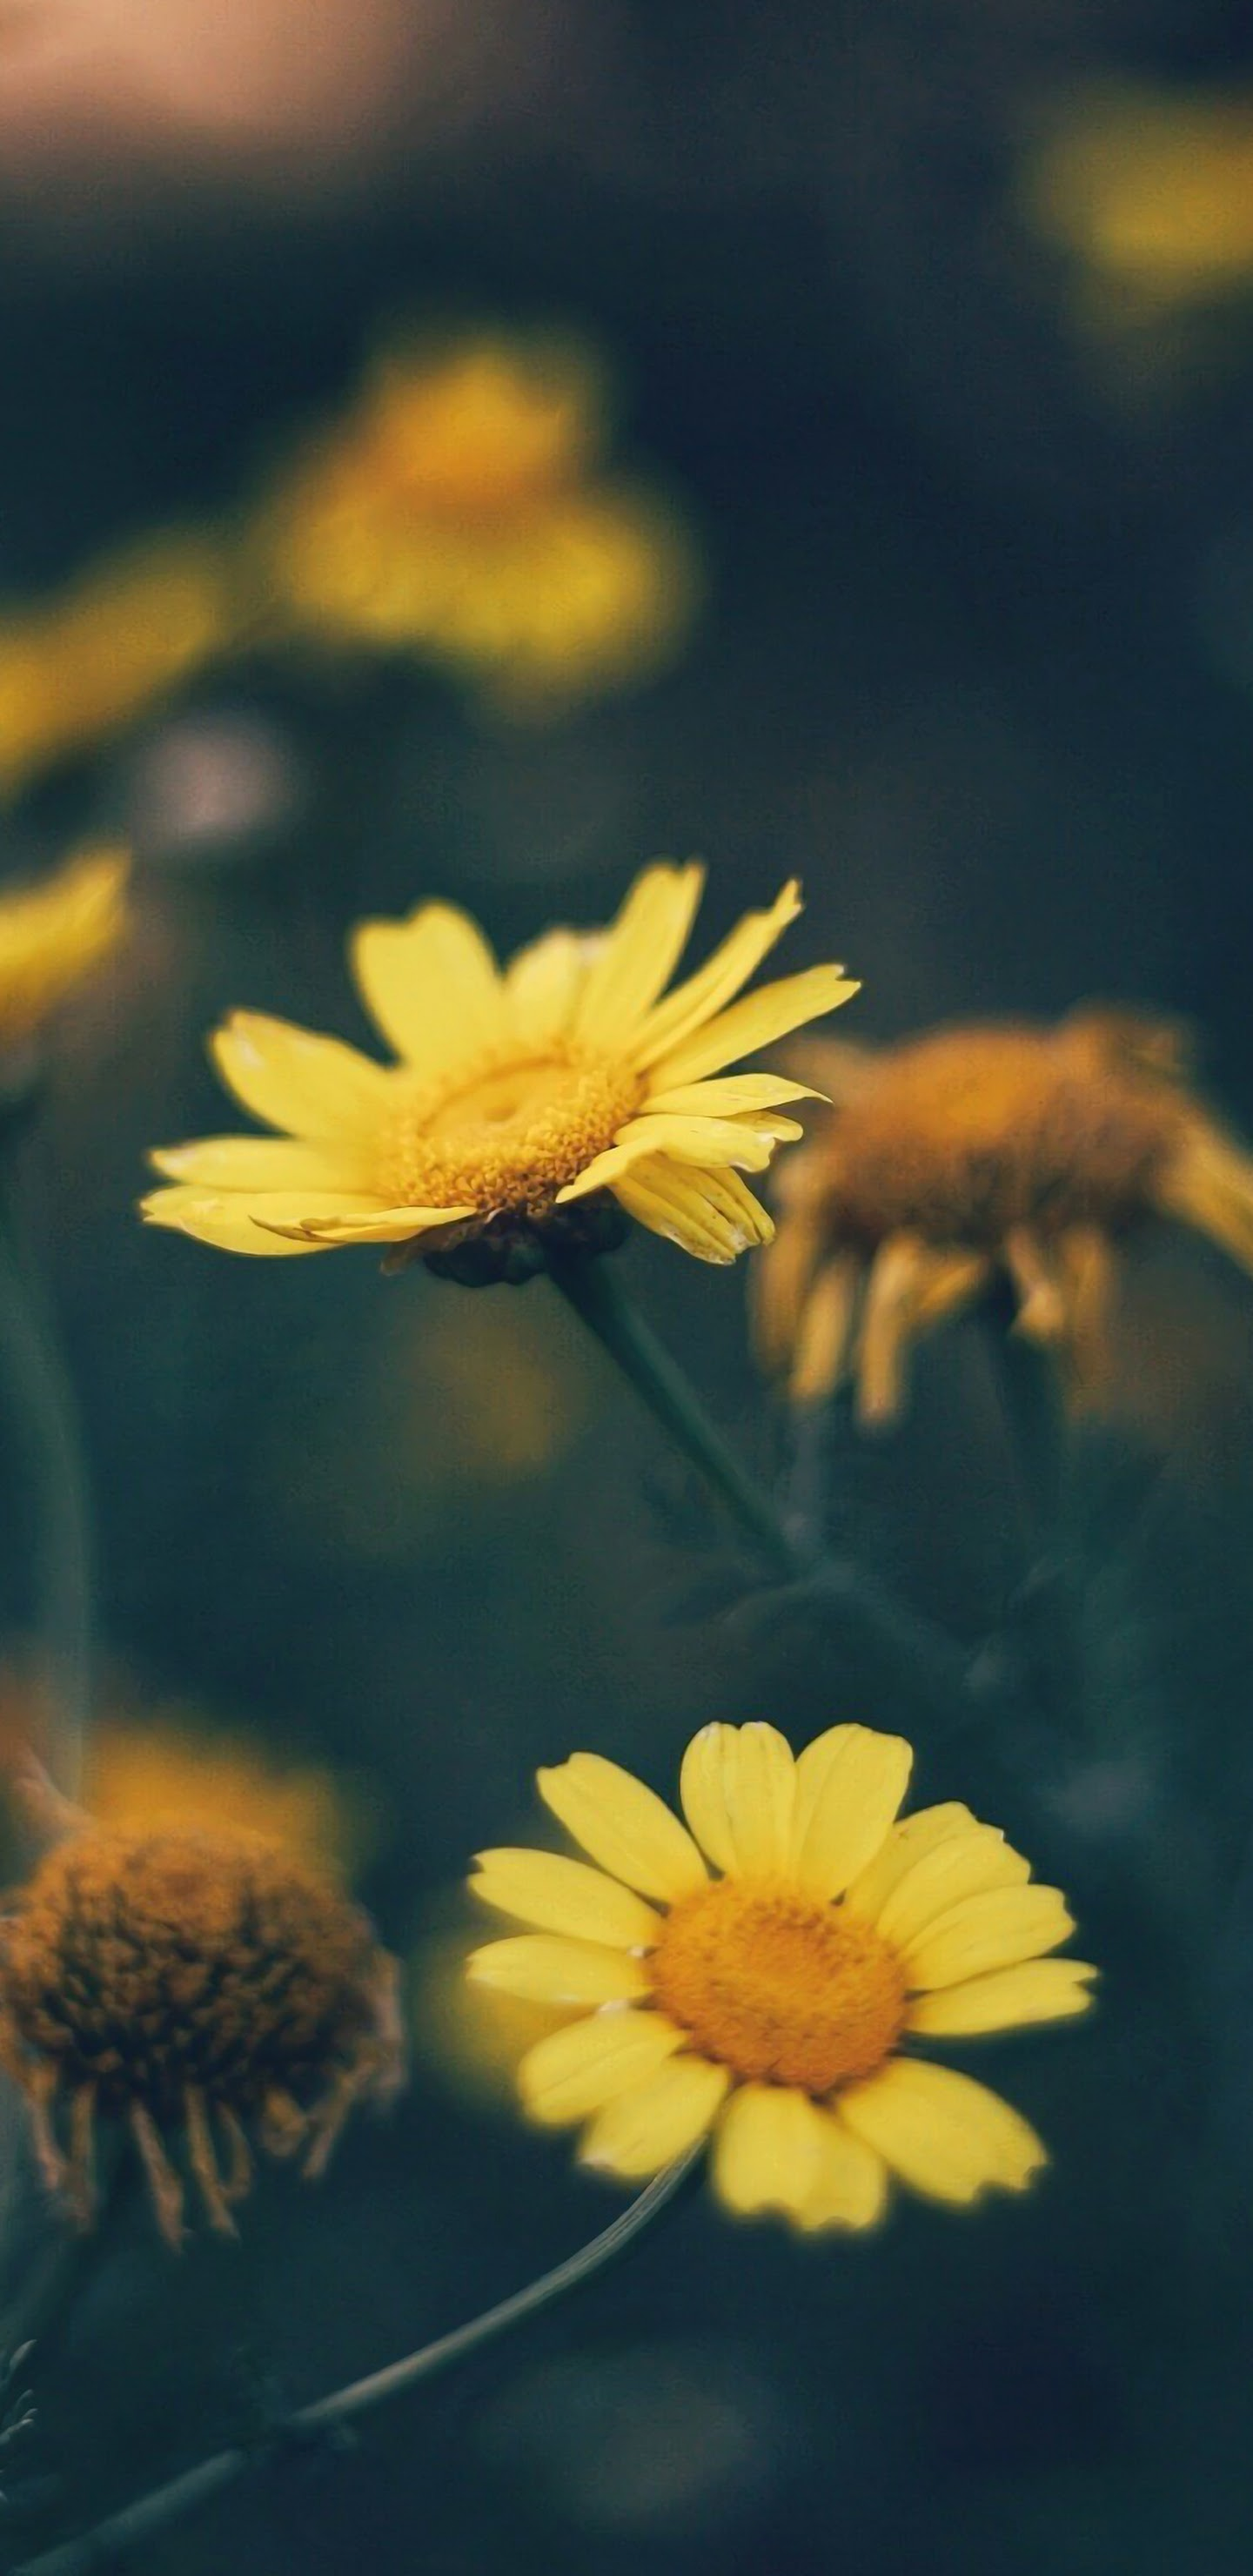 Yellow Daisy Flower Nature 4k Wallpaper 90